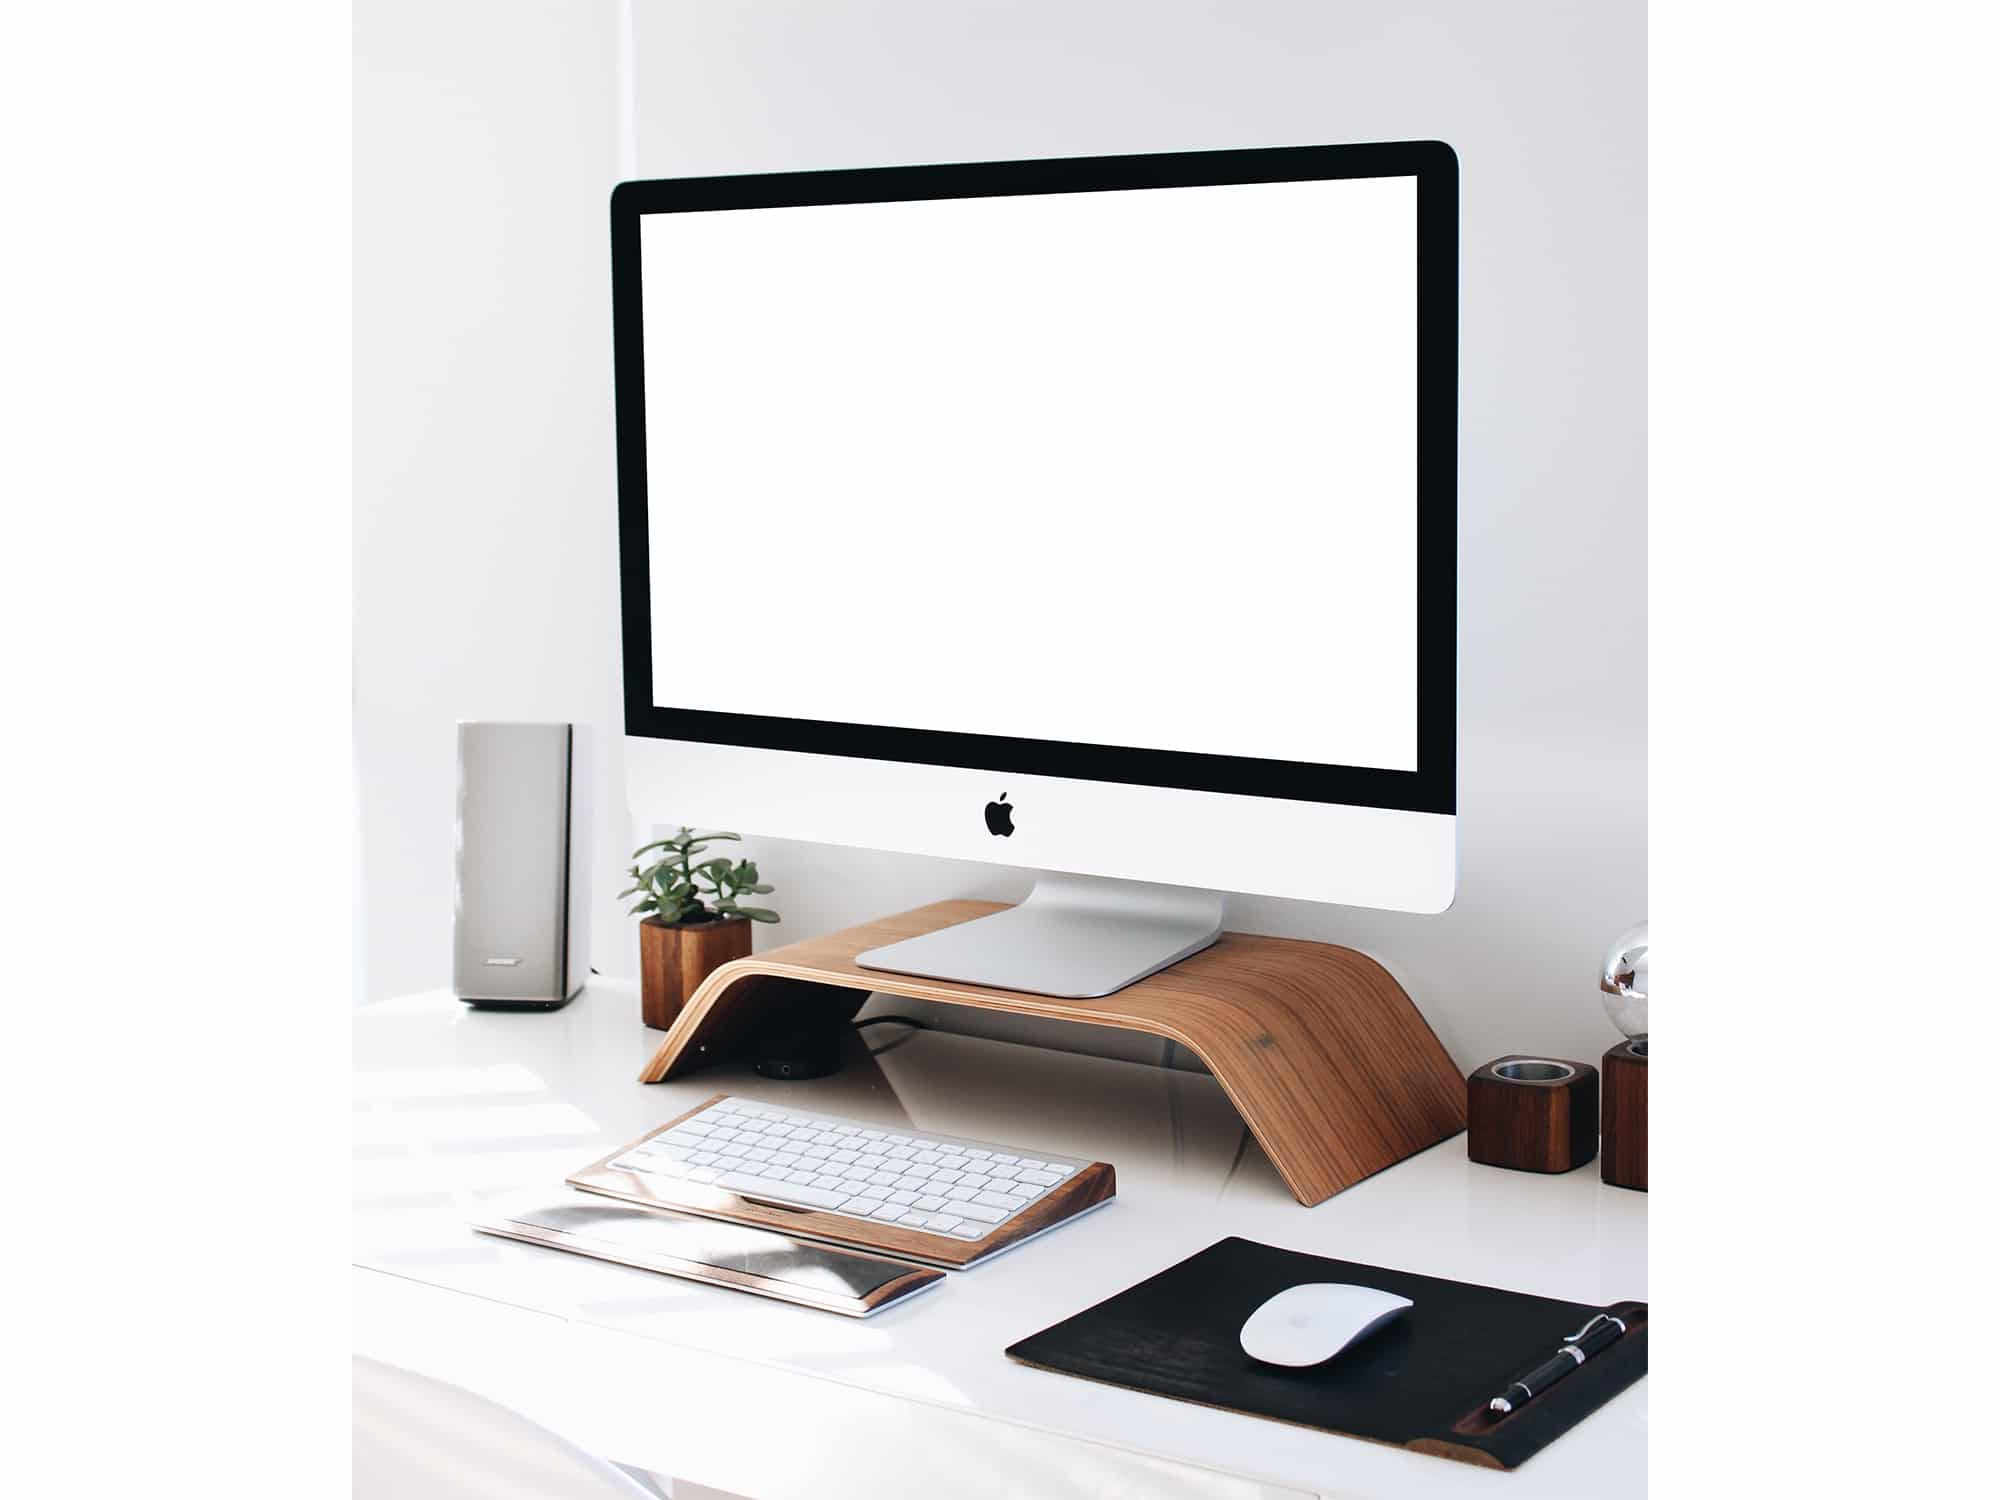 Very best iMac on Wooden Monitor Stand Mockup | The Mockup Club KI86